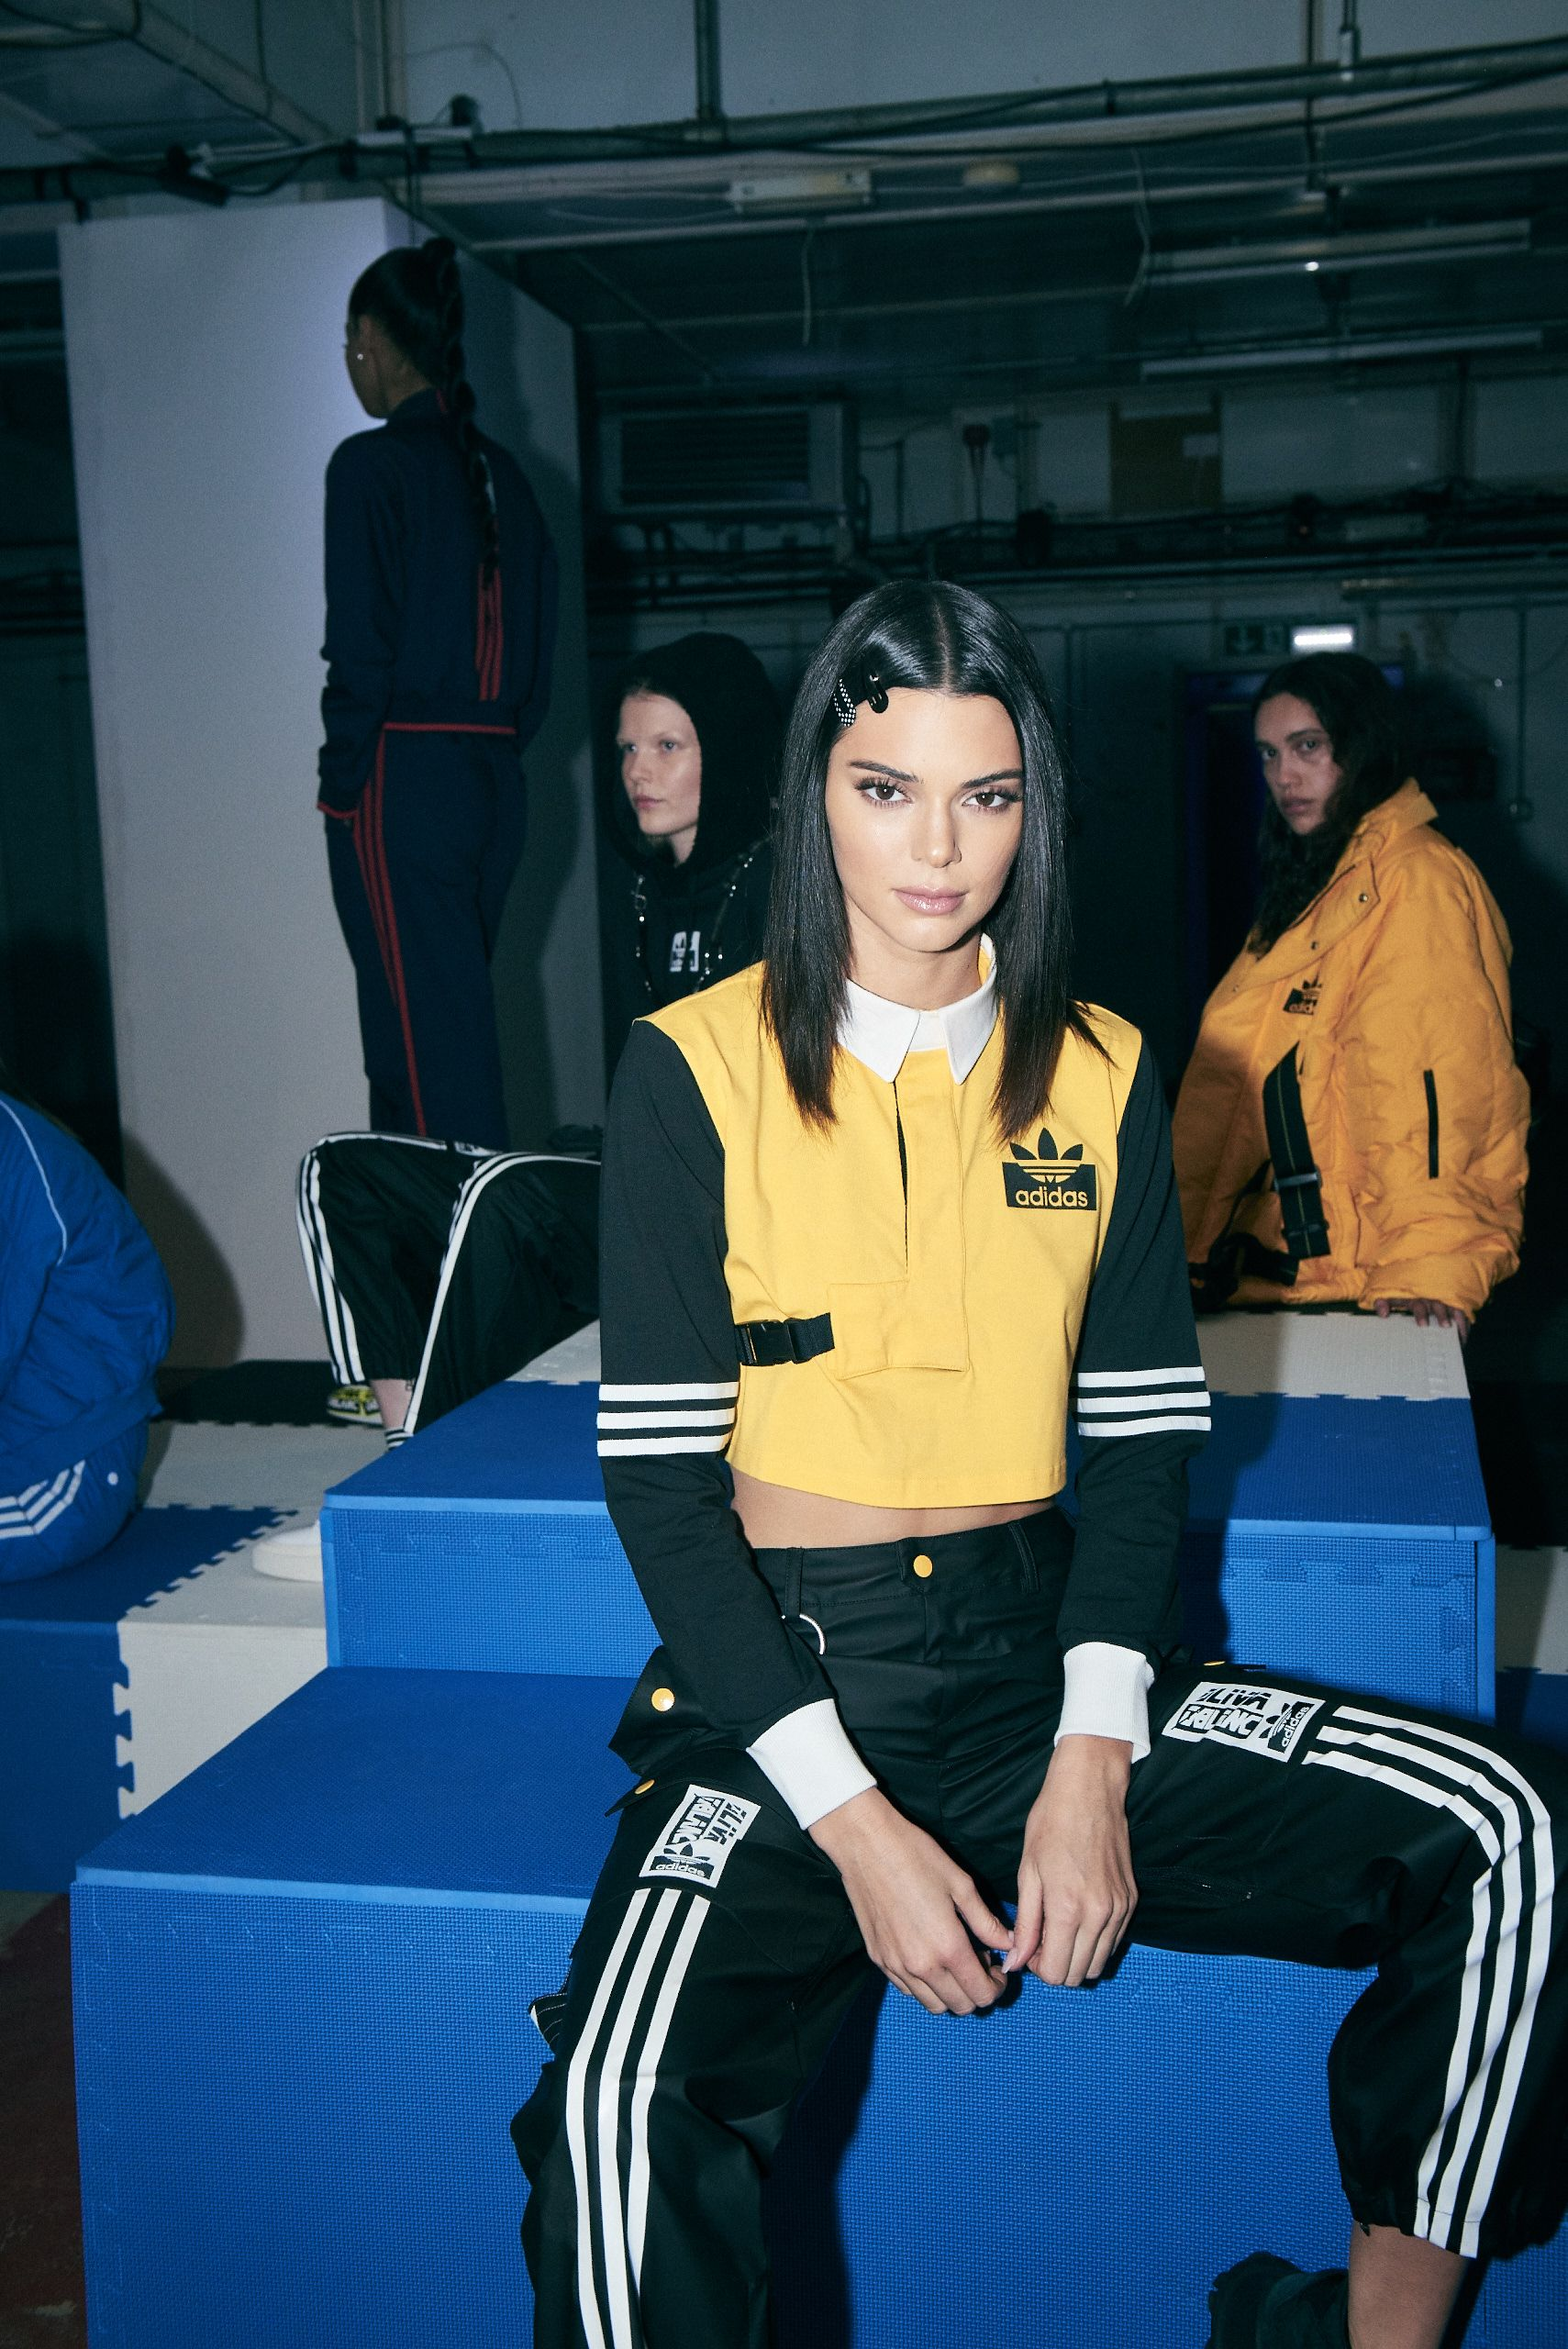 Adidas Superstar Outfit outfits   Fashion, Style et Tomboy